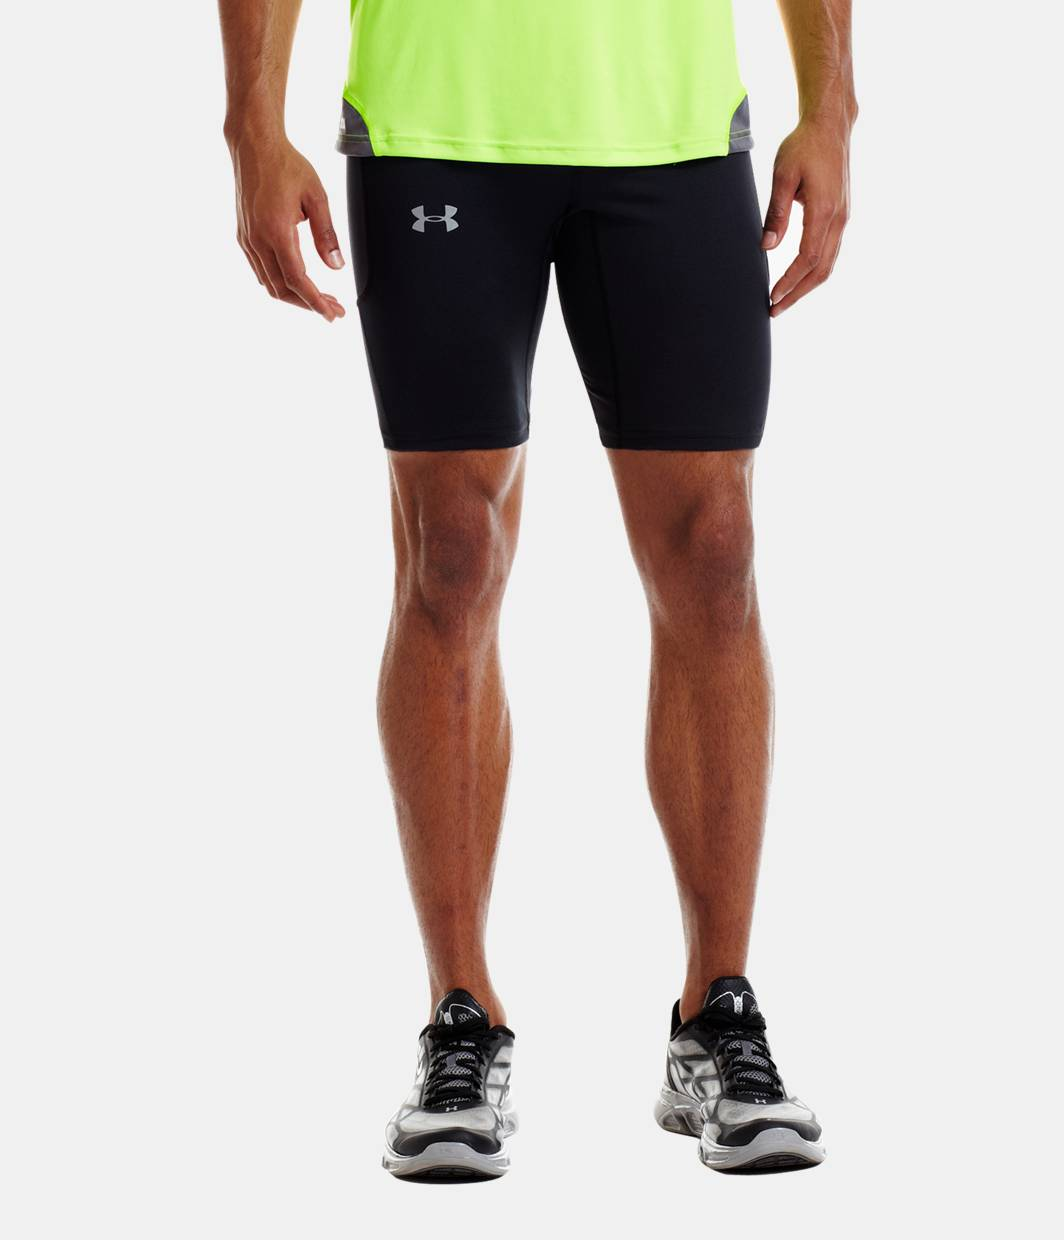 Find Men's Running Built-in Compression Short Shorts at urgut.ga Enjoy free shipping and returns with NikePlus.